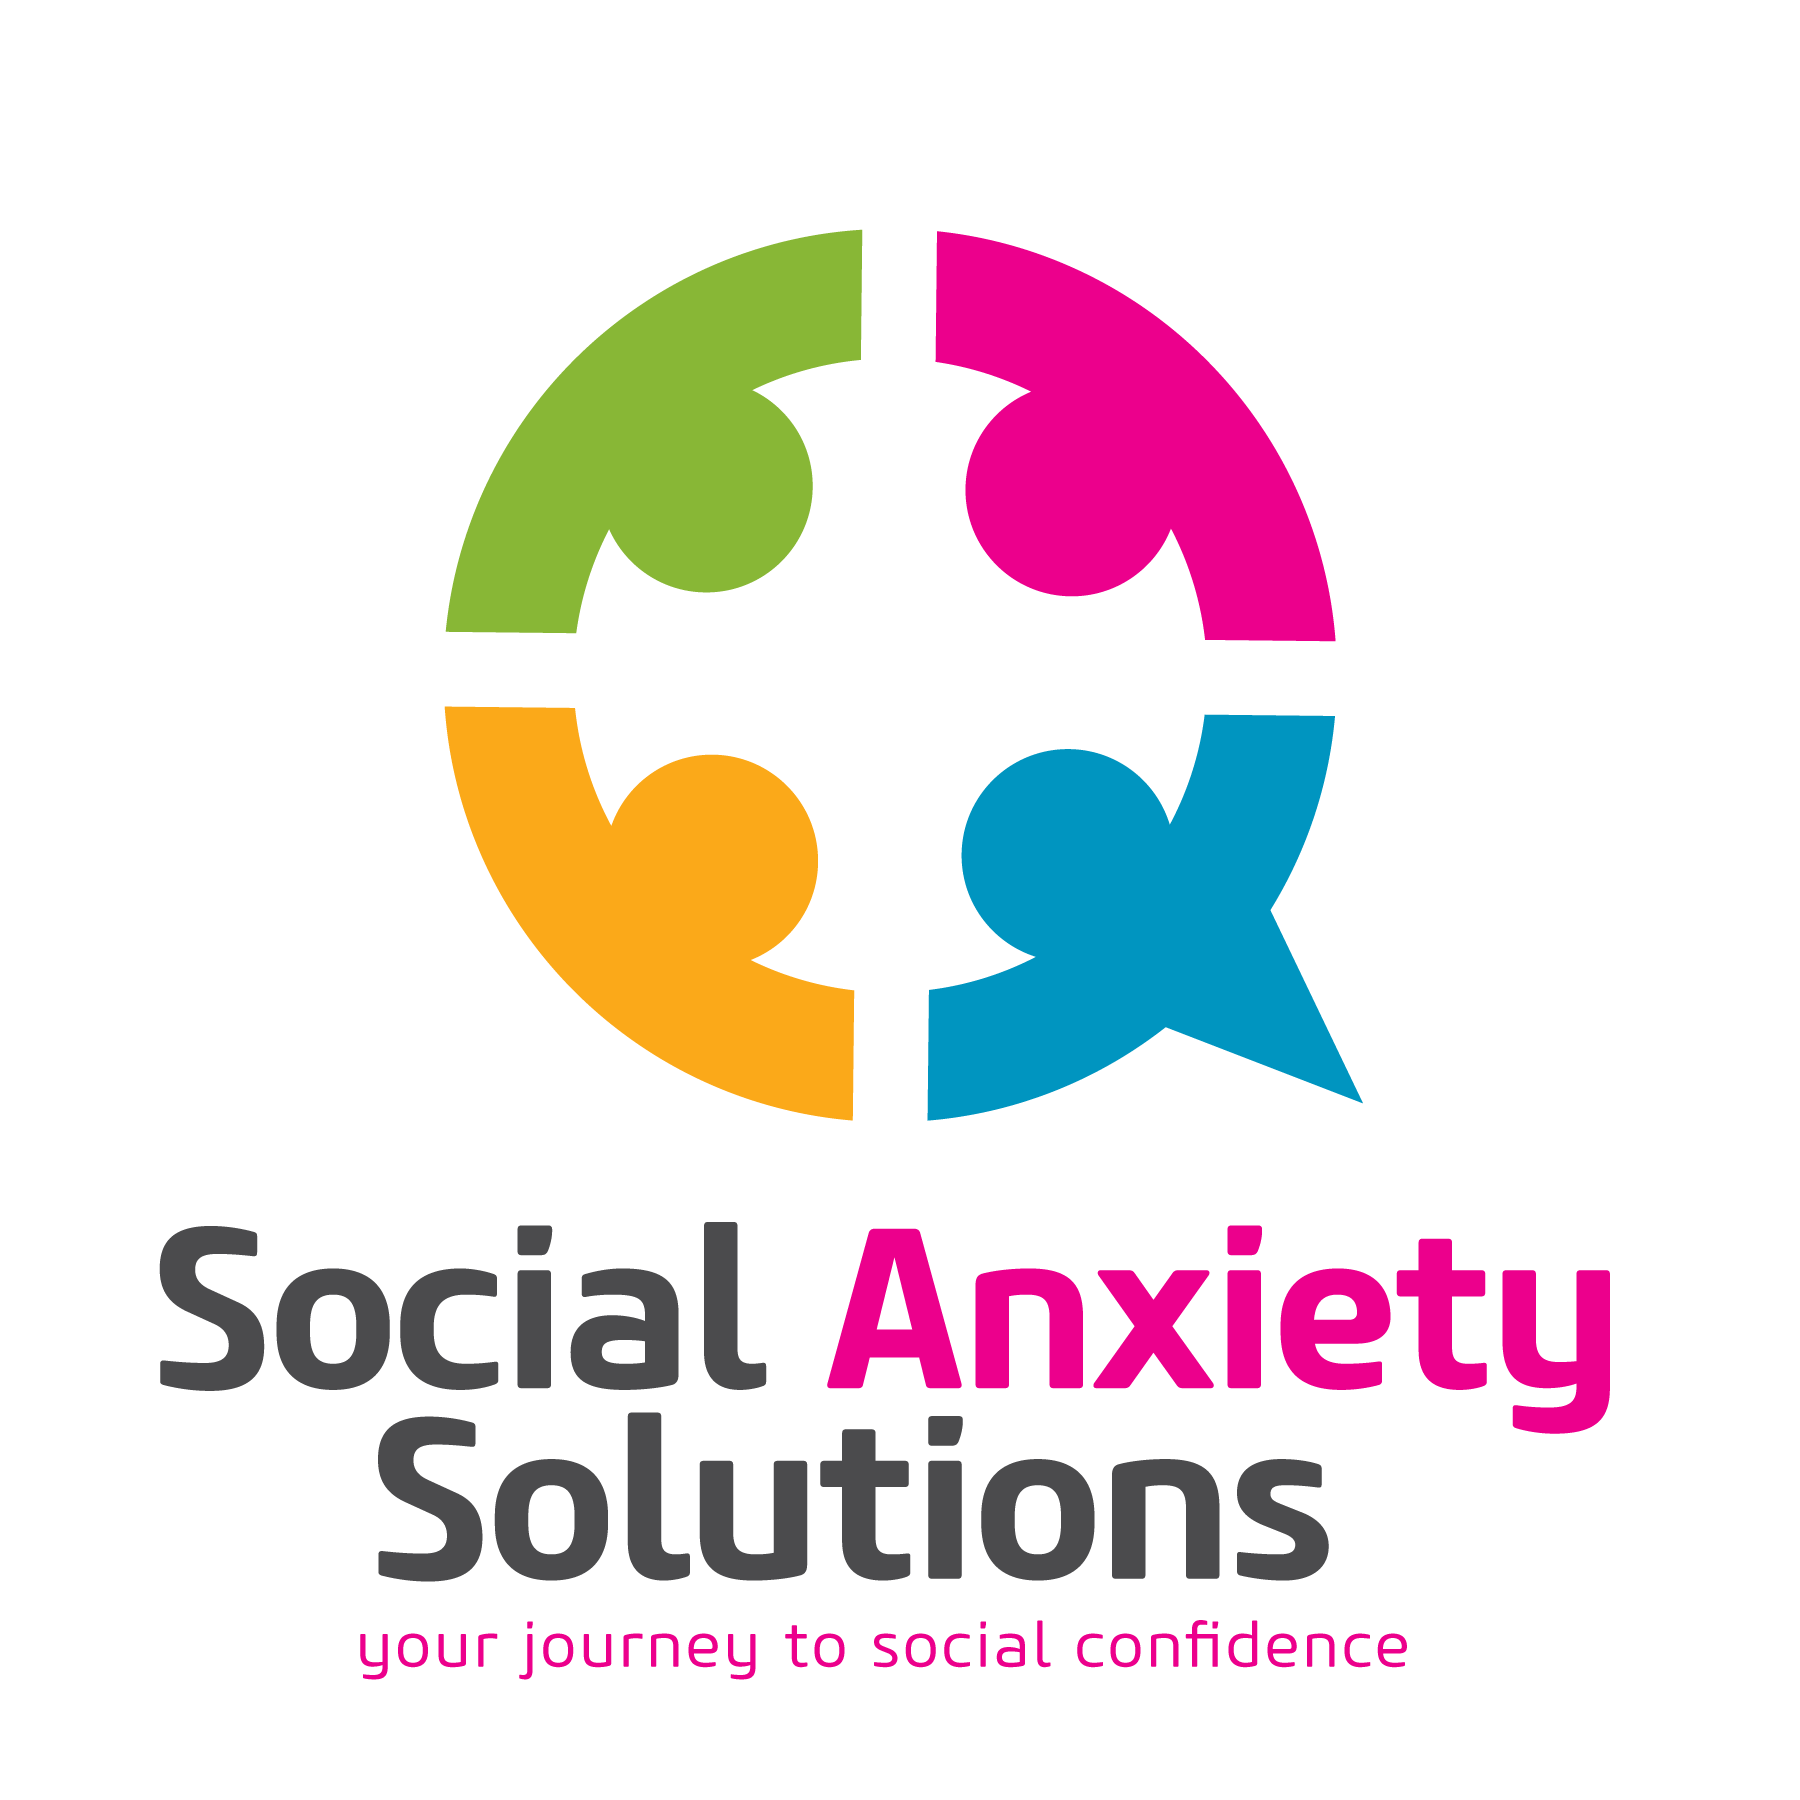 Social Anxiety Solutions